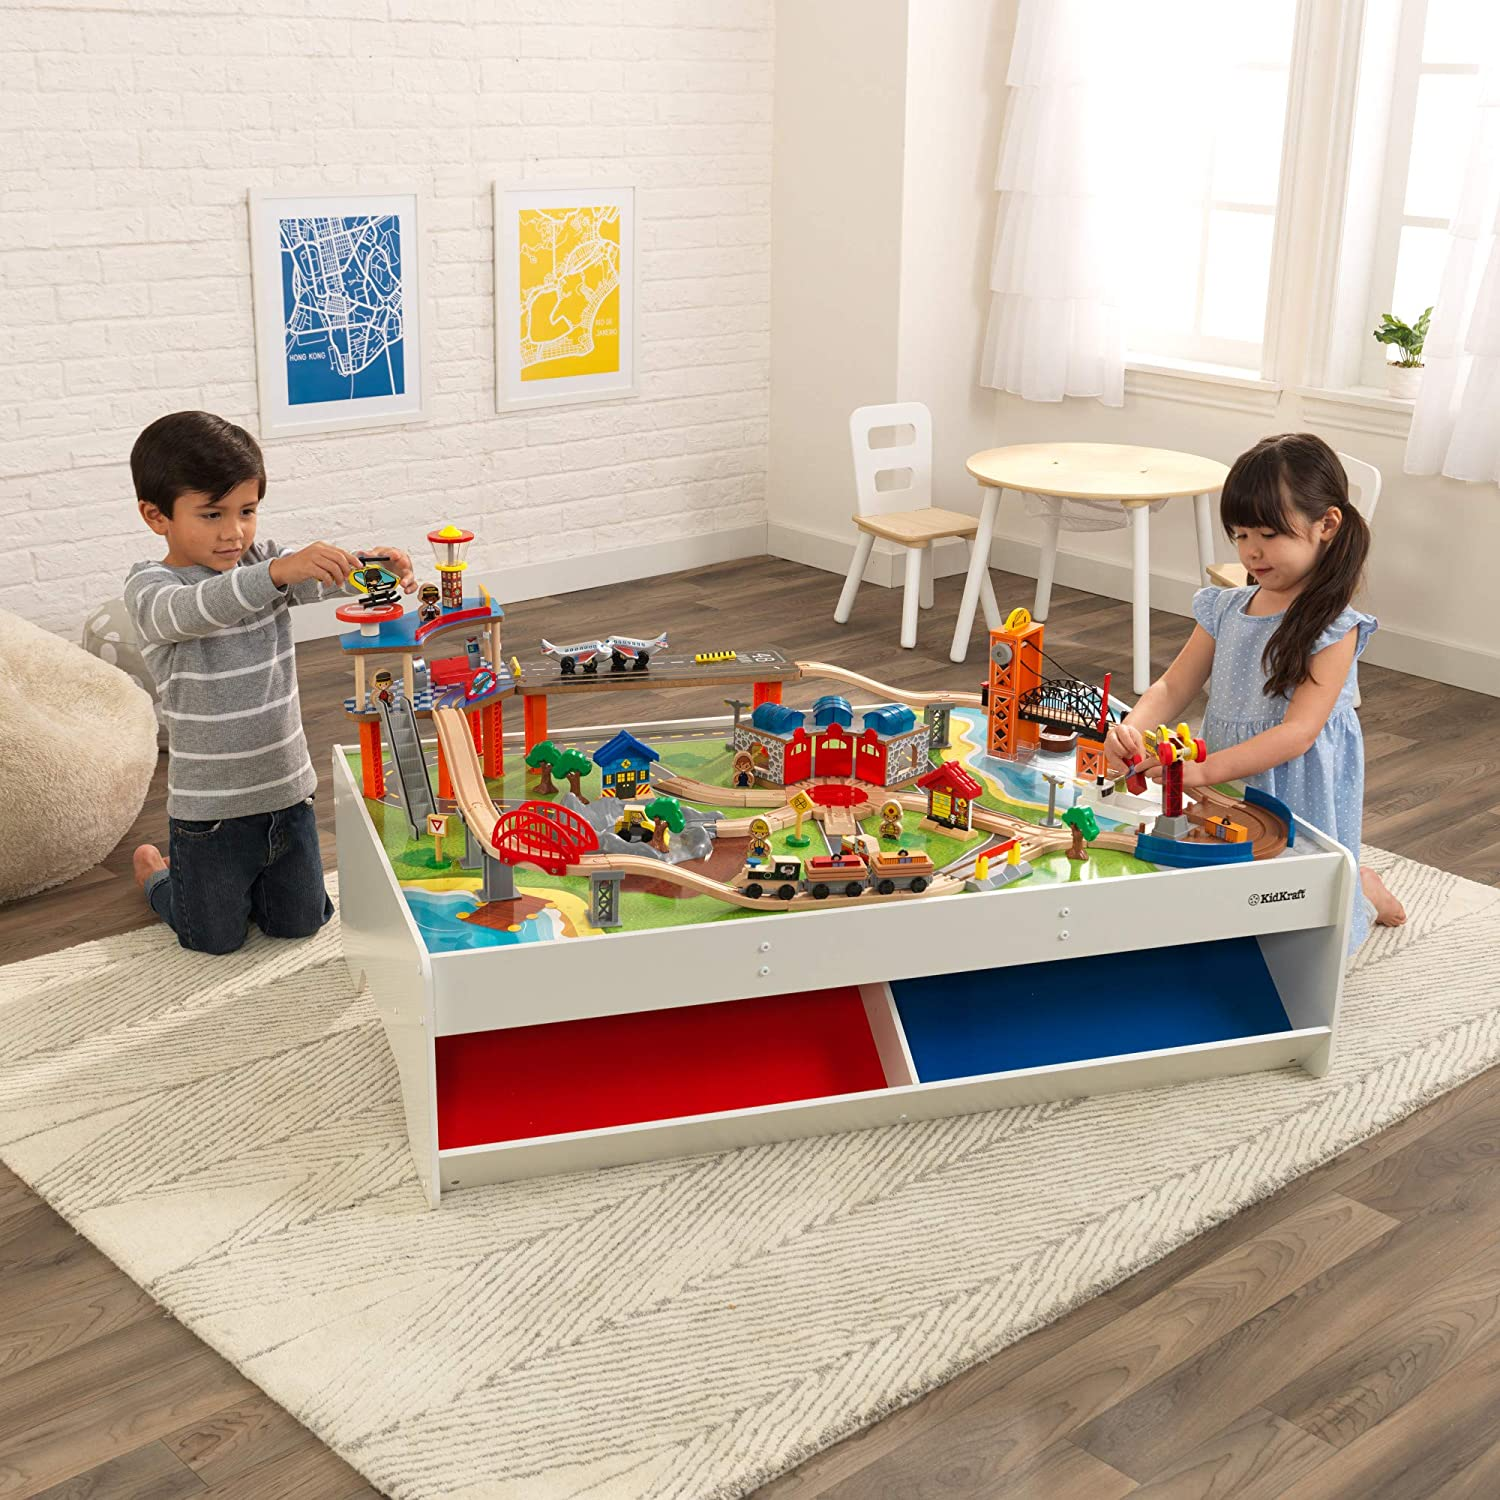 Kidkraft Railway Express Wooden Train Set Table With 79 Pieces And Two Storage Bins Multicolor 83 9 X 31 1 X 13 18012 Toys Games Amazon Com